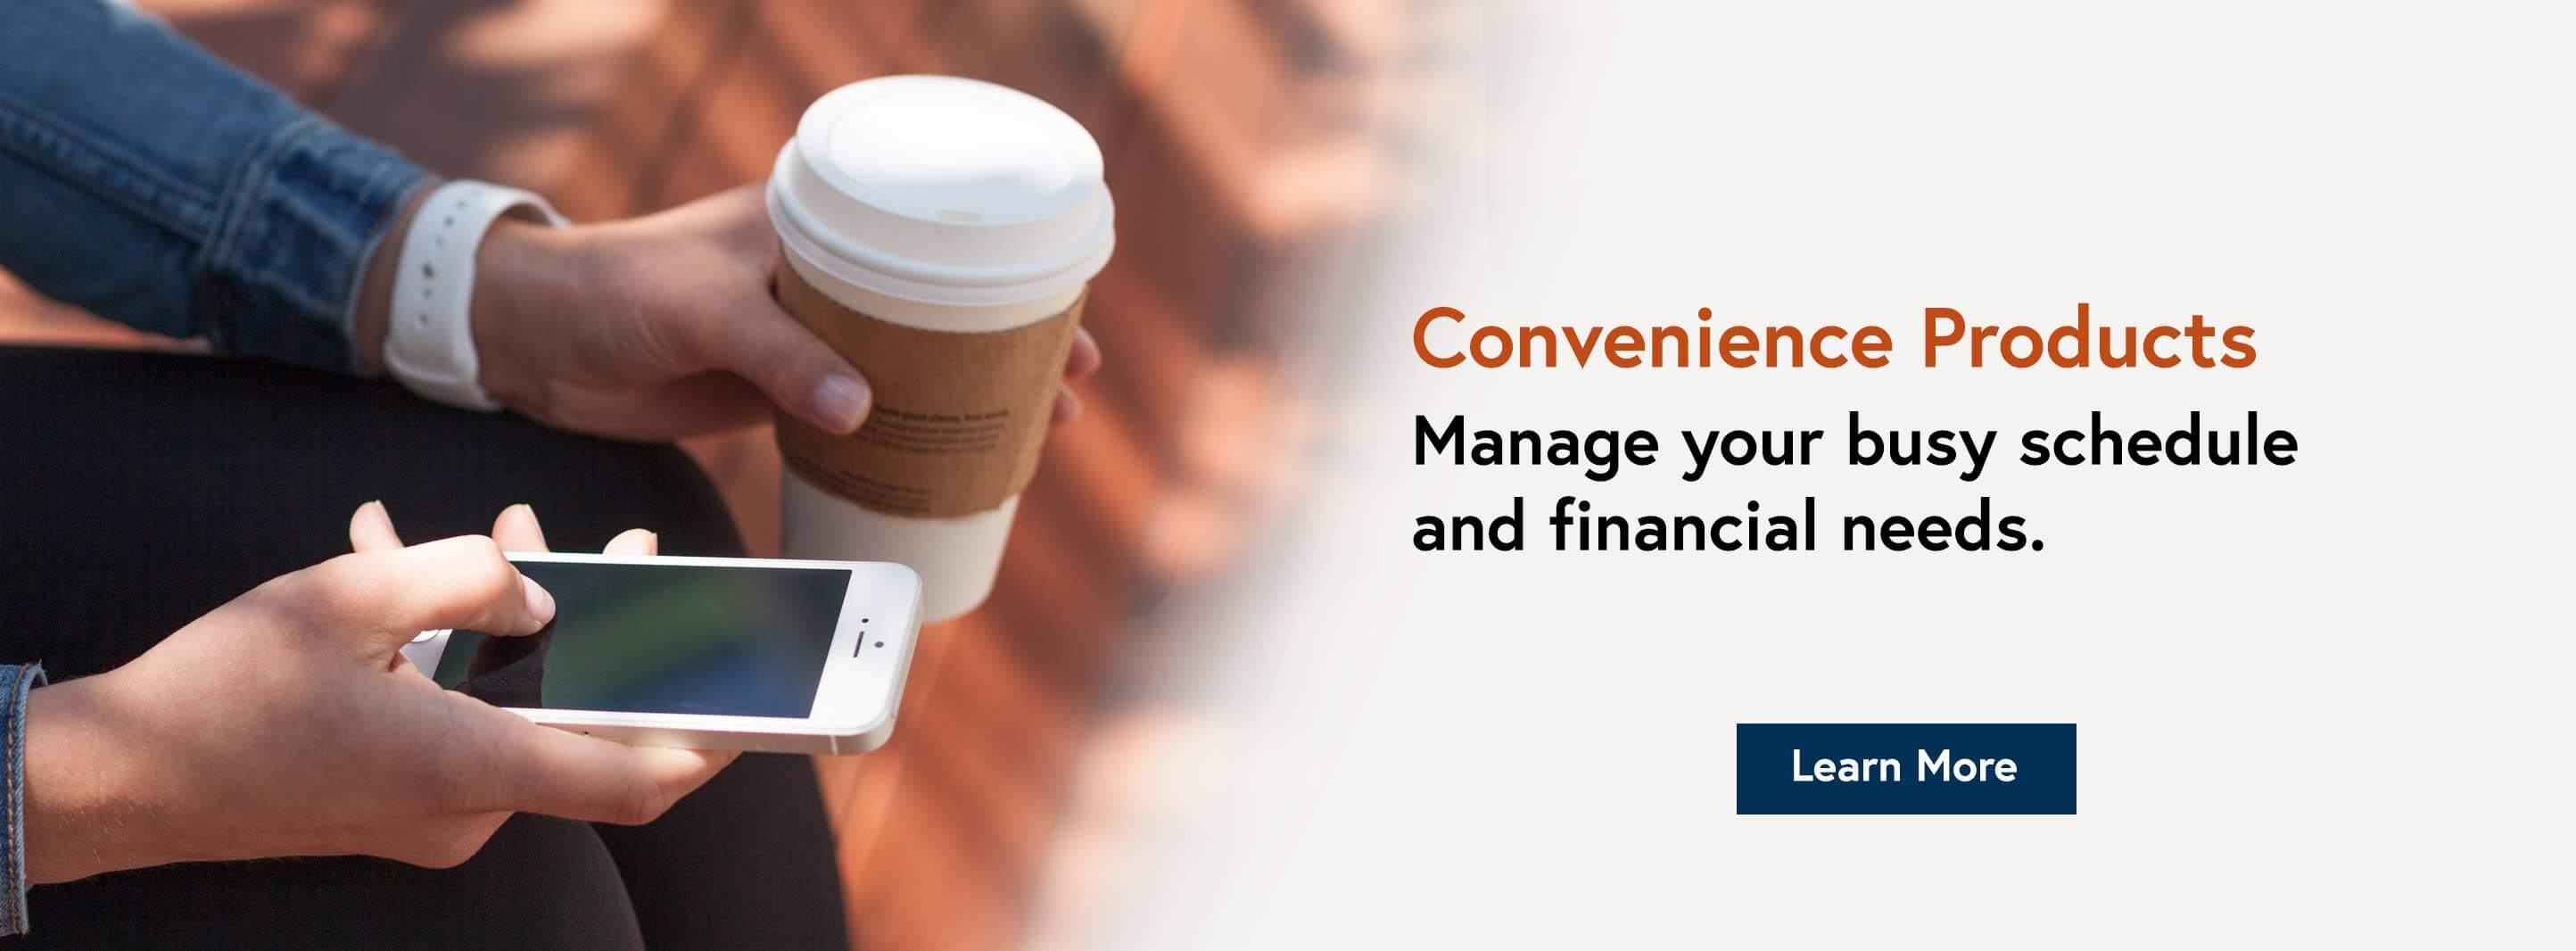 Convenience Products. Manage your busy schedule and financial needs. Learn More.